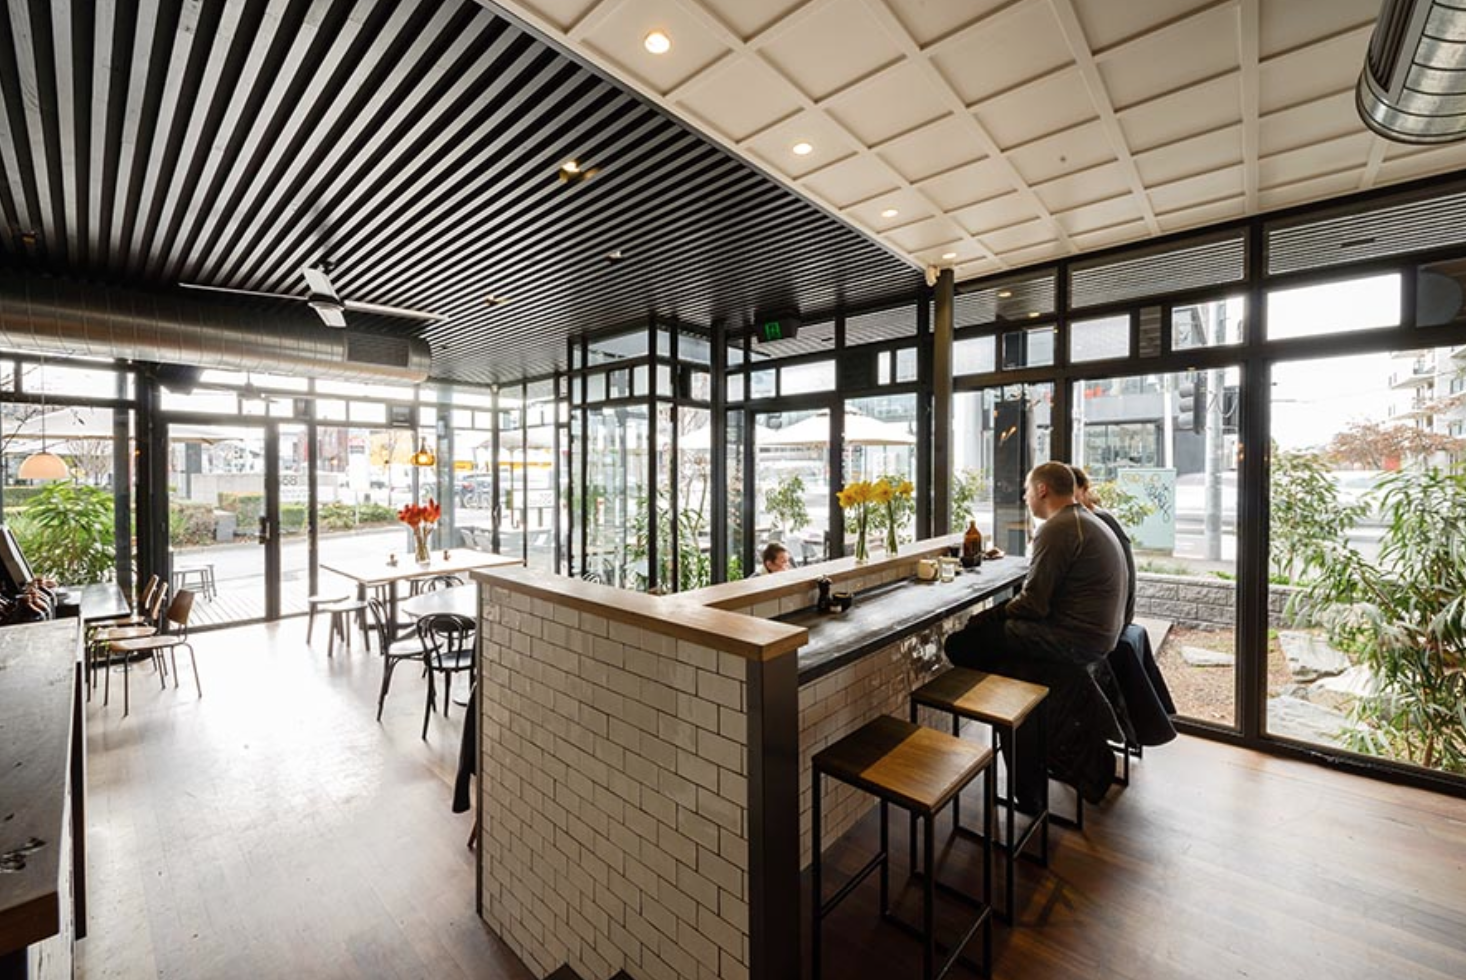 name: top paddock cafe location: richmond, melbourne design